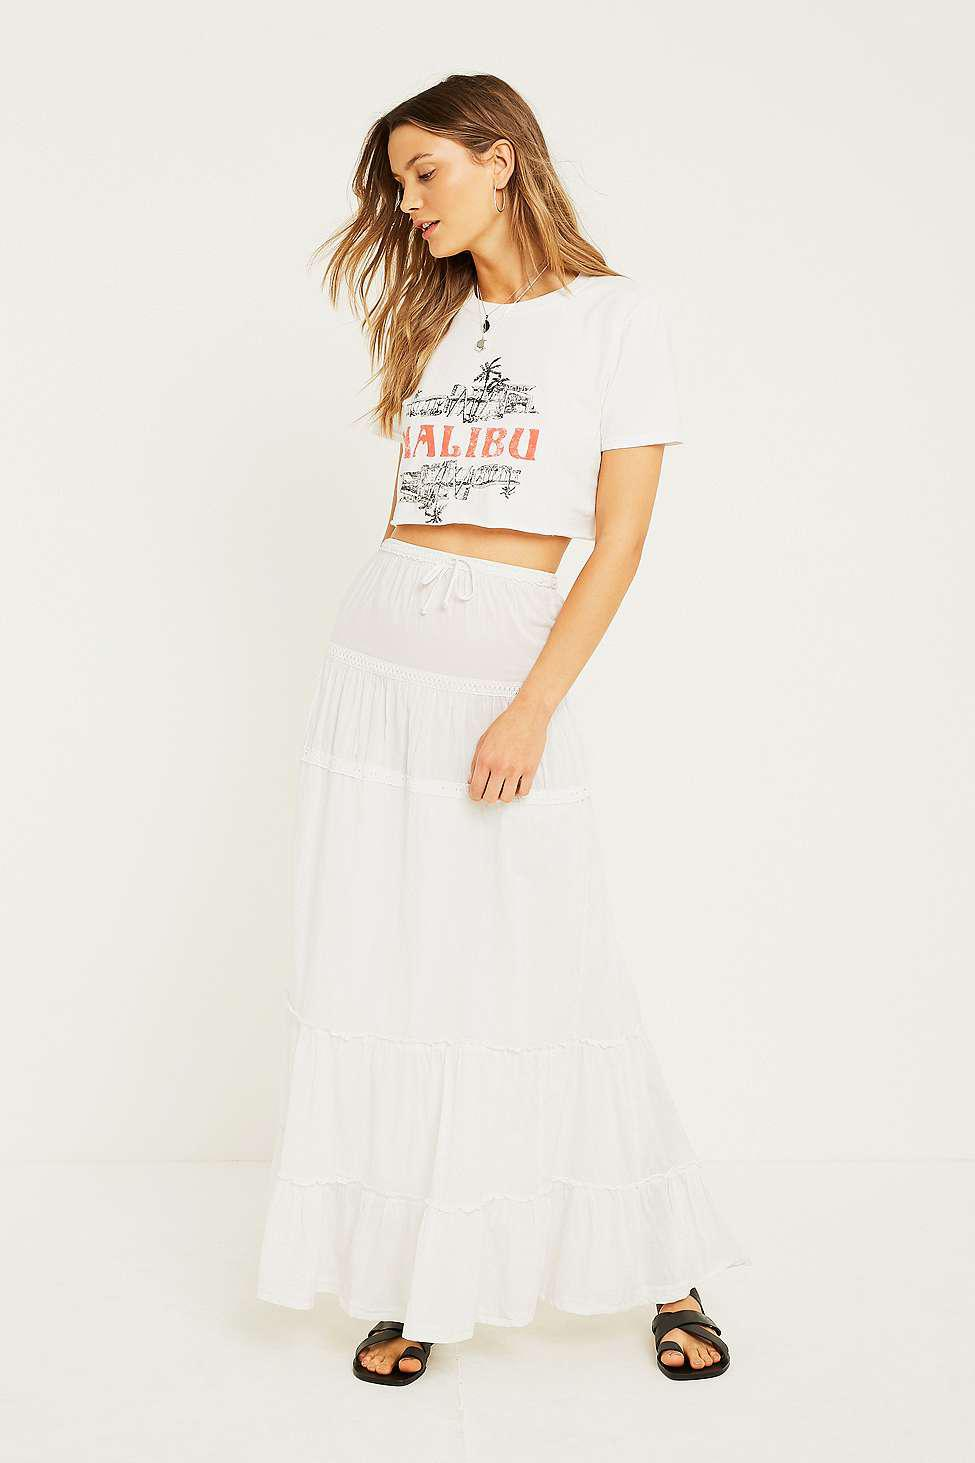 74d331090 Urban Renewal Vintage Remnants White Maxi Skirt - Womens S/m in ...